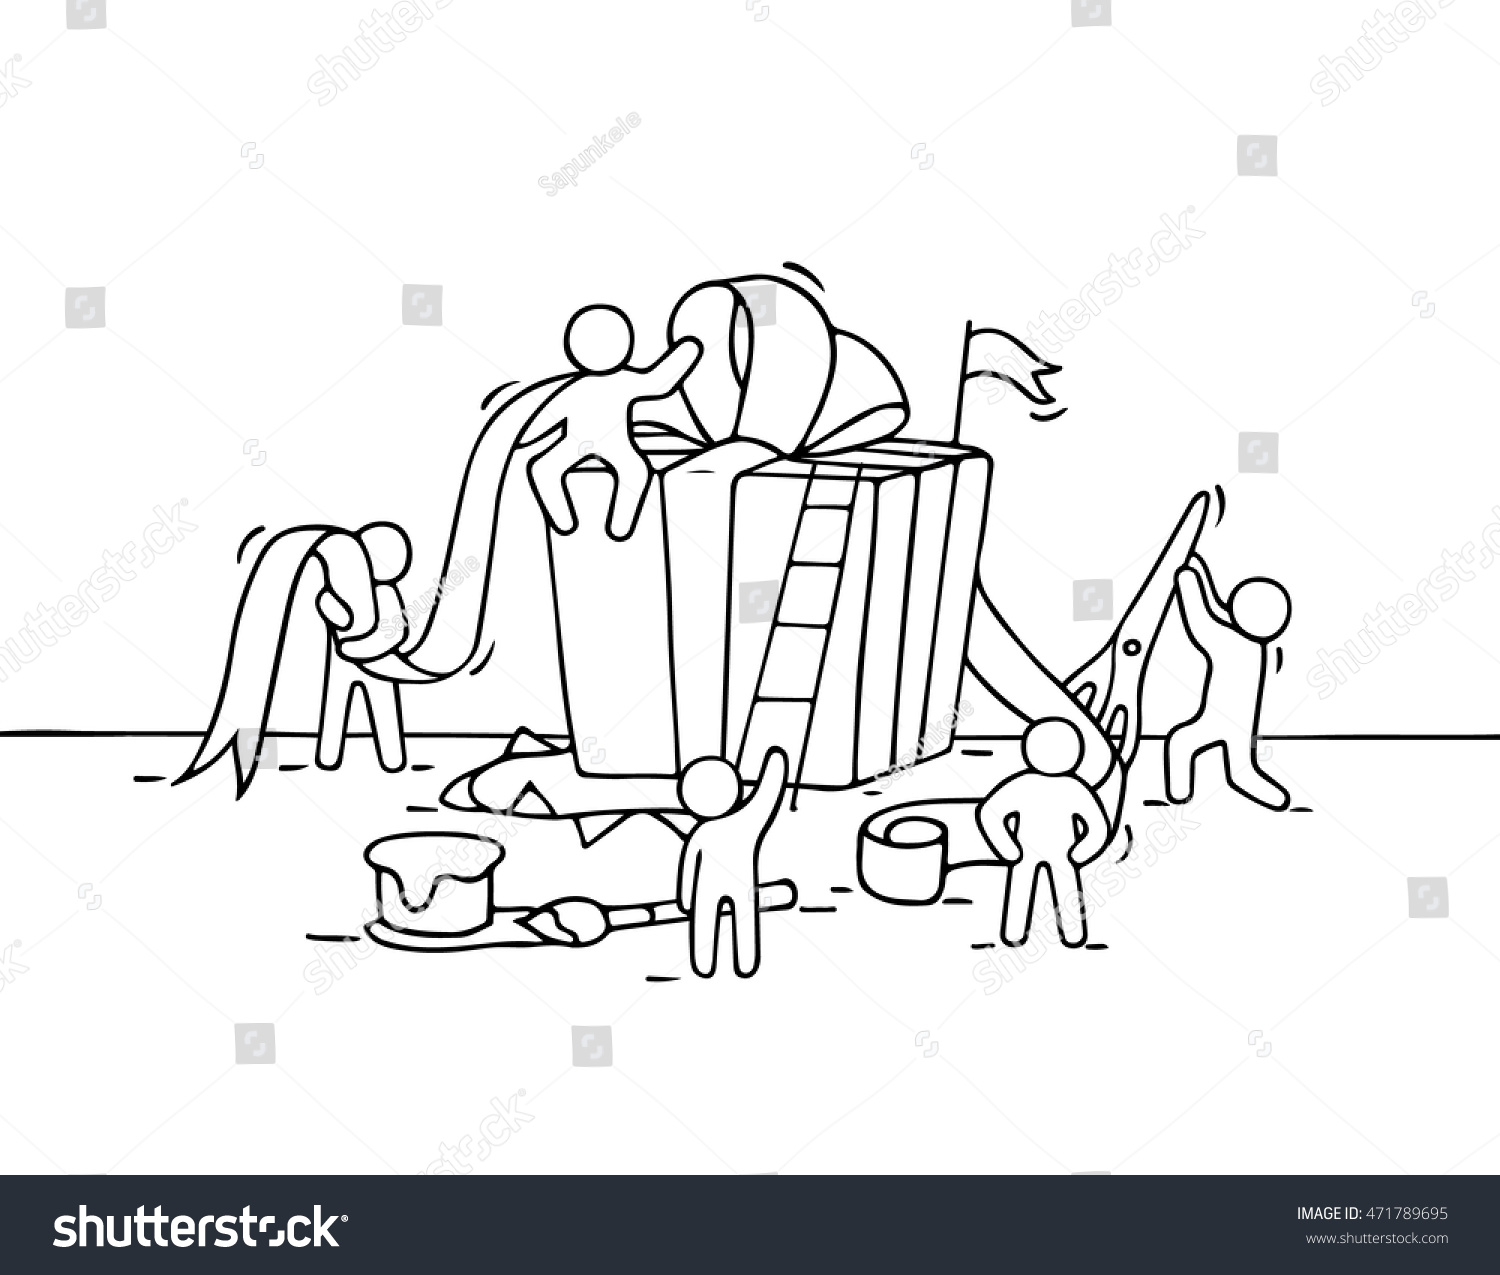 Sketch Gift Box Working Little People Stock Vector (Royalty Free